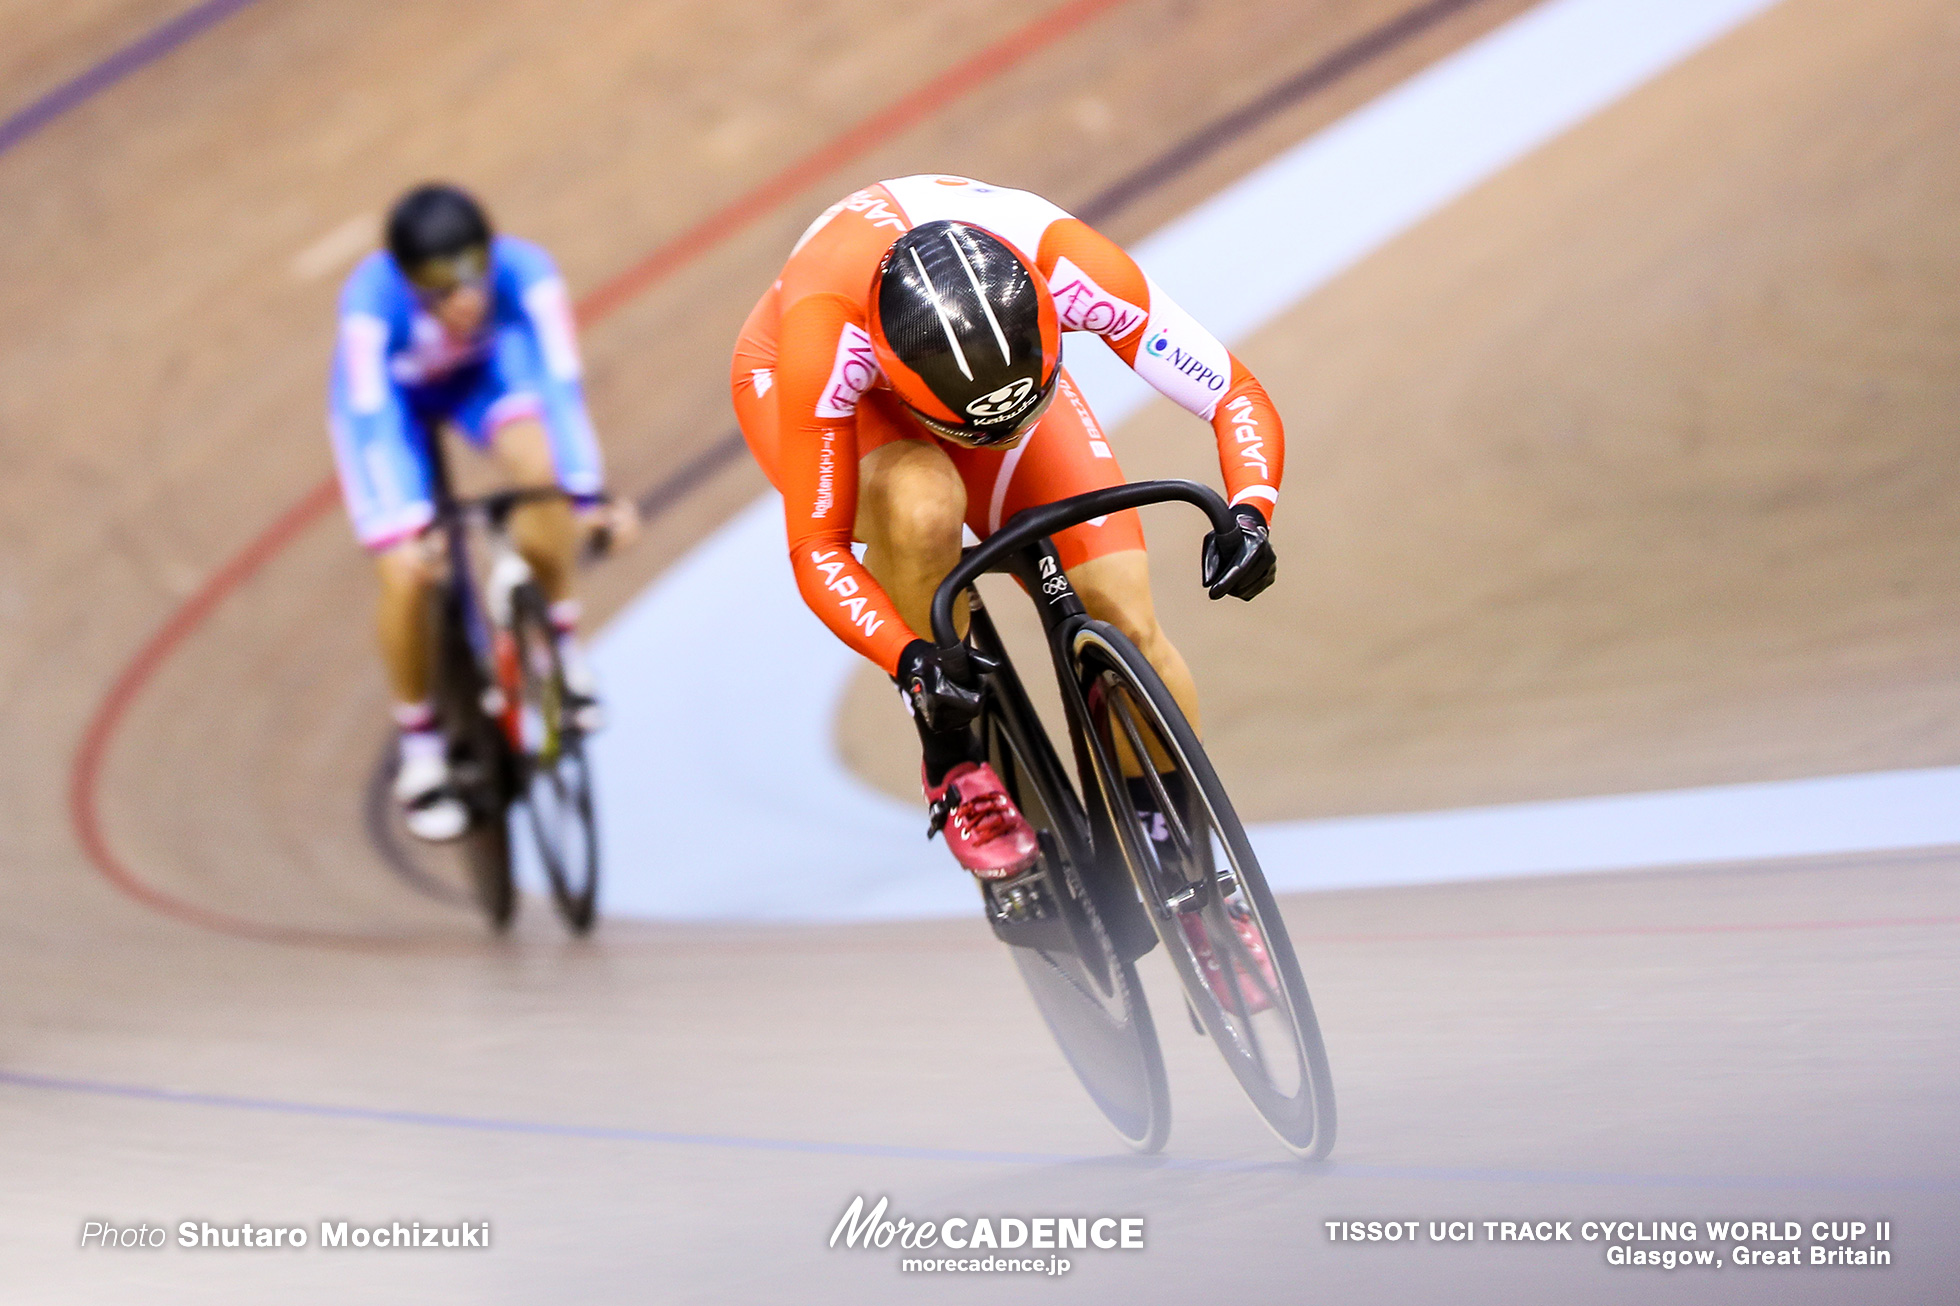 1st Round Repechage / Women's Keirin / TISSOT UCI TRACK CYCLING WORLD CUP II, Glasgow, Great Britain